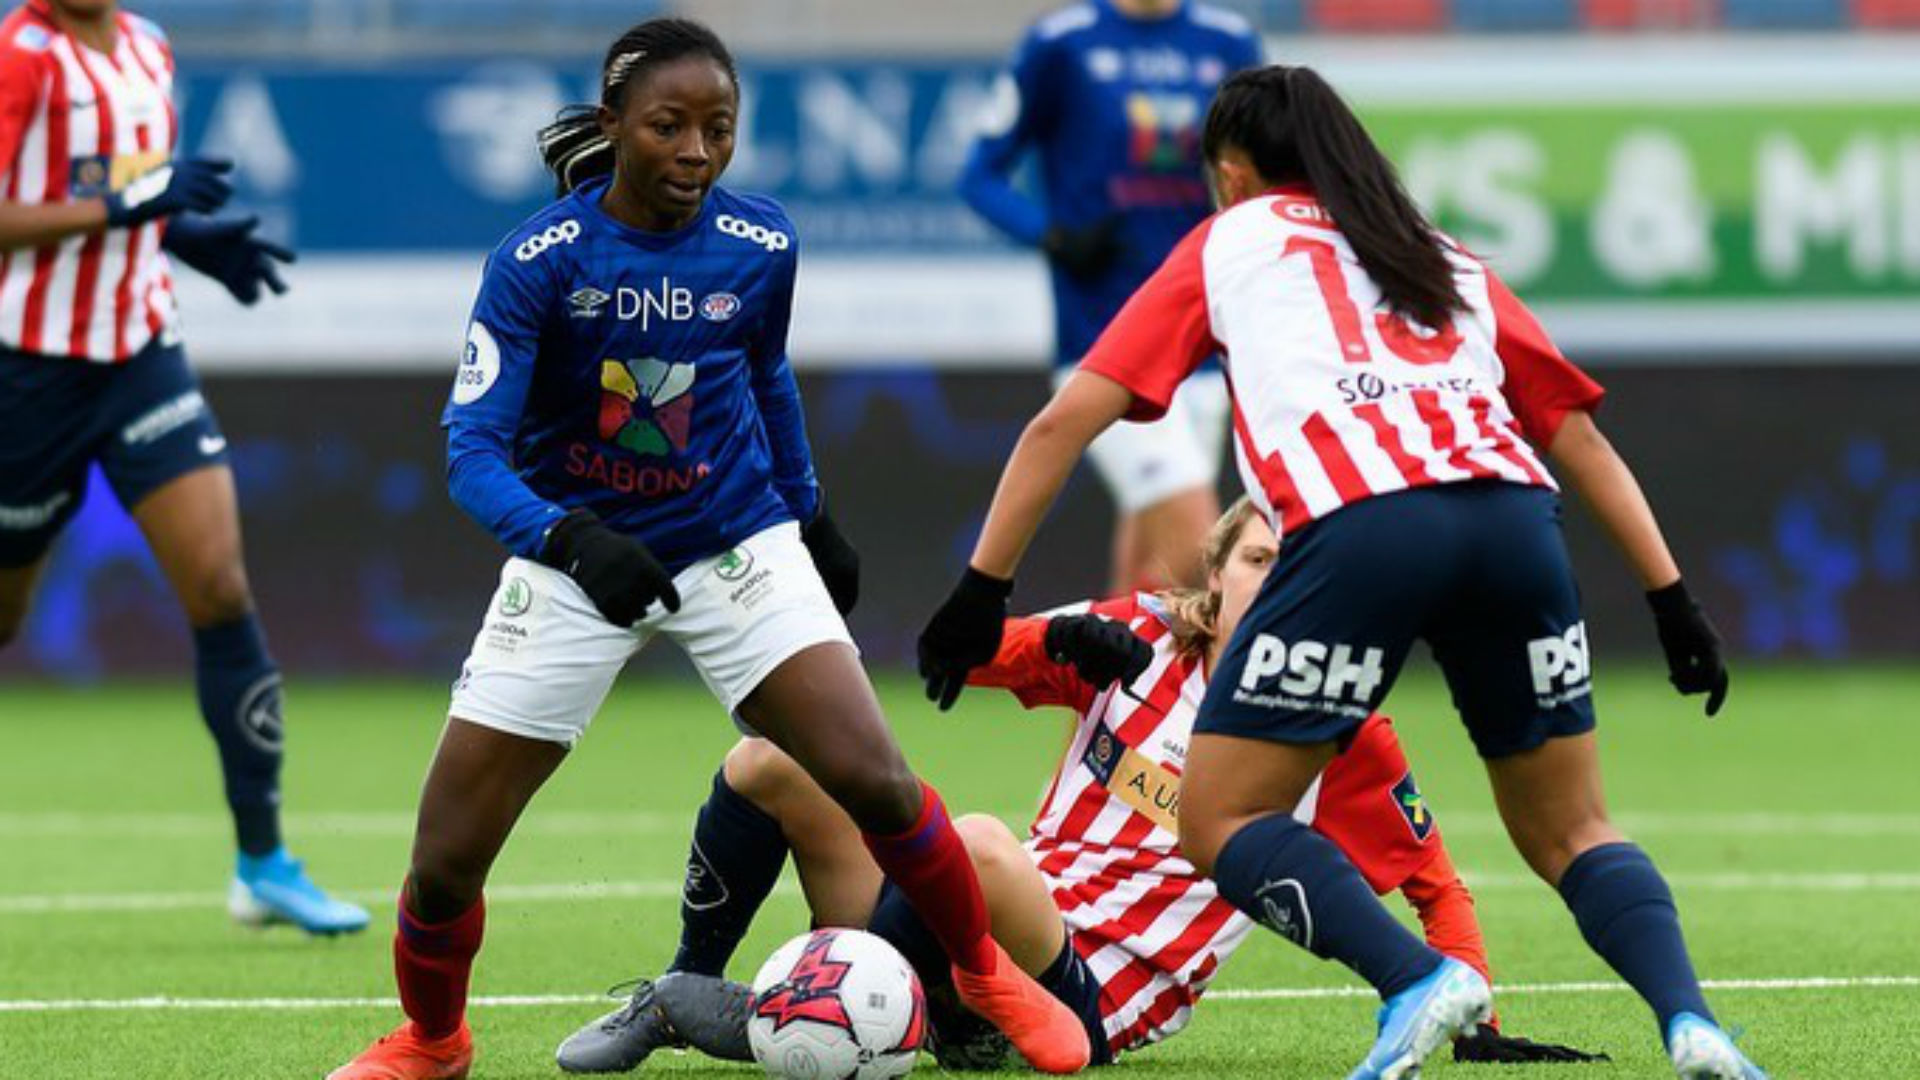 Nchout's Valerenga ease past Ajibade's Avaldsnes into Norwegian Women's Cup final